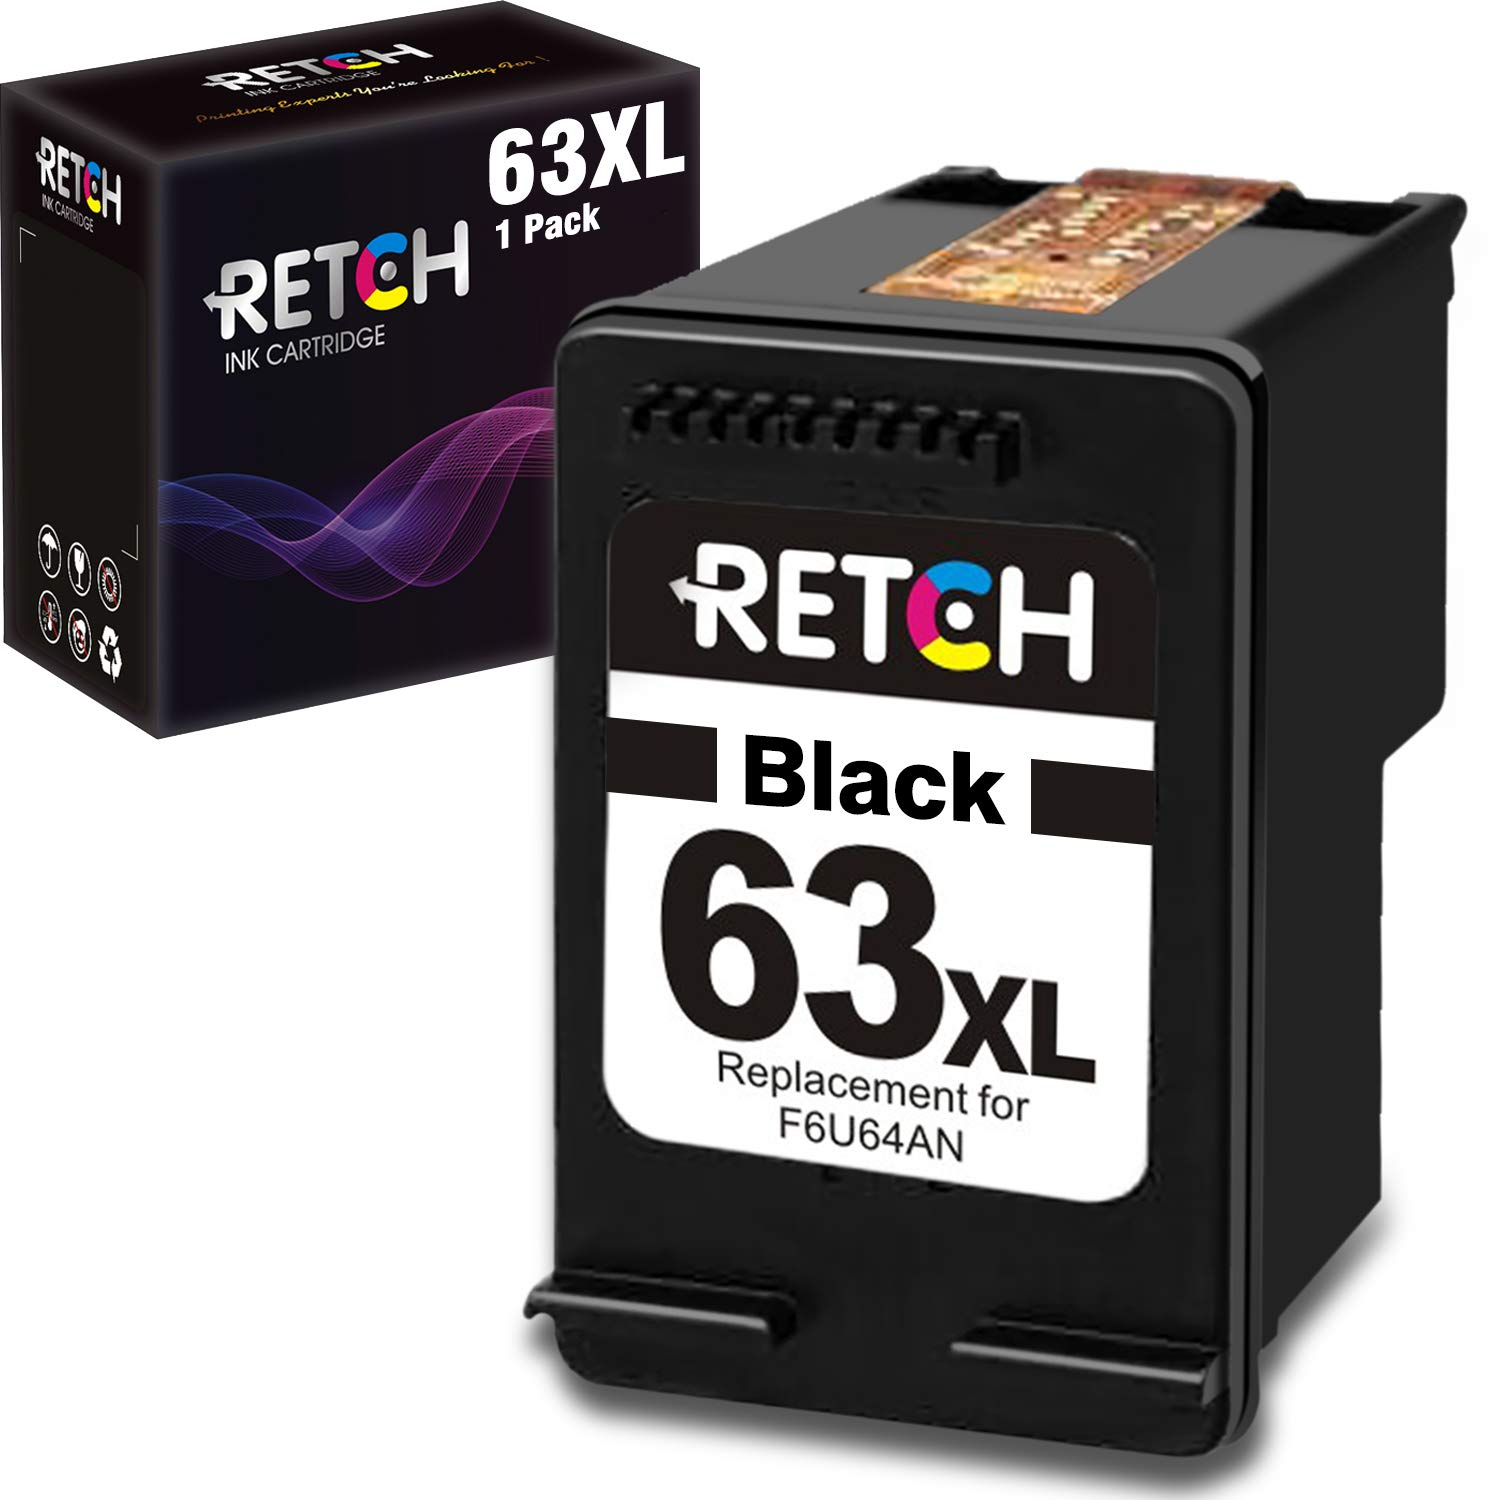 RETCH Re-Manufactured Ink Cartridge Replacement for HP 63XL 63 XL for HP Envy 4520 4516 Officejet 5255 5258 5220 3830 4650 3831 3833 4655 DeskJet 1112 3630 3632 3633 3634 2130 2132 (1 Black)